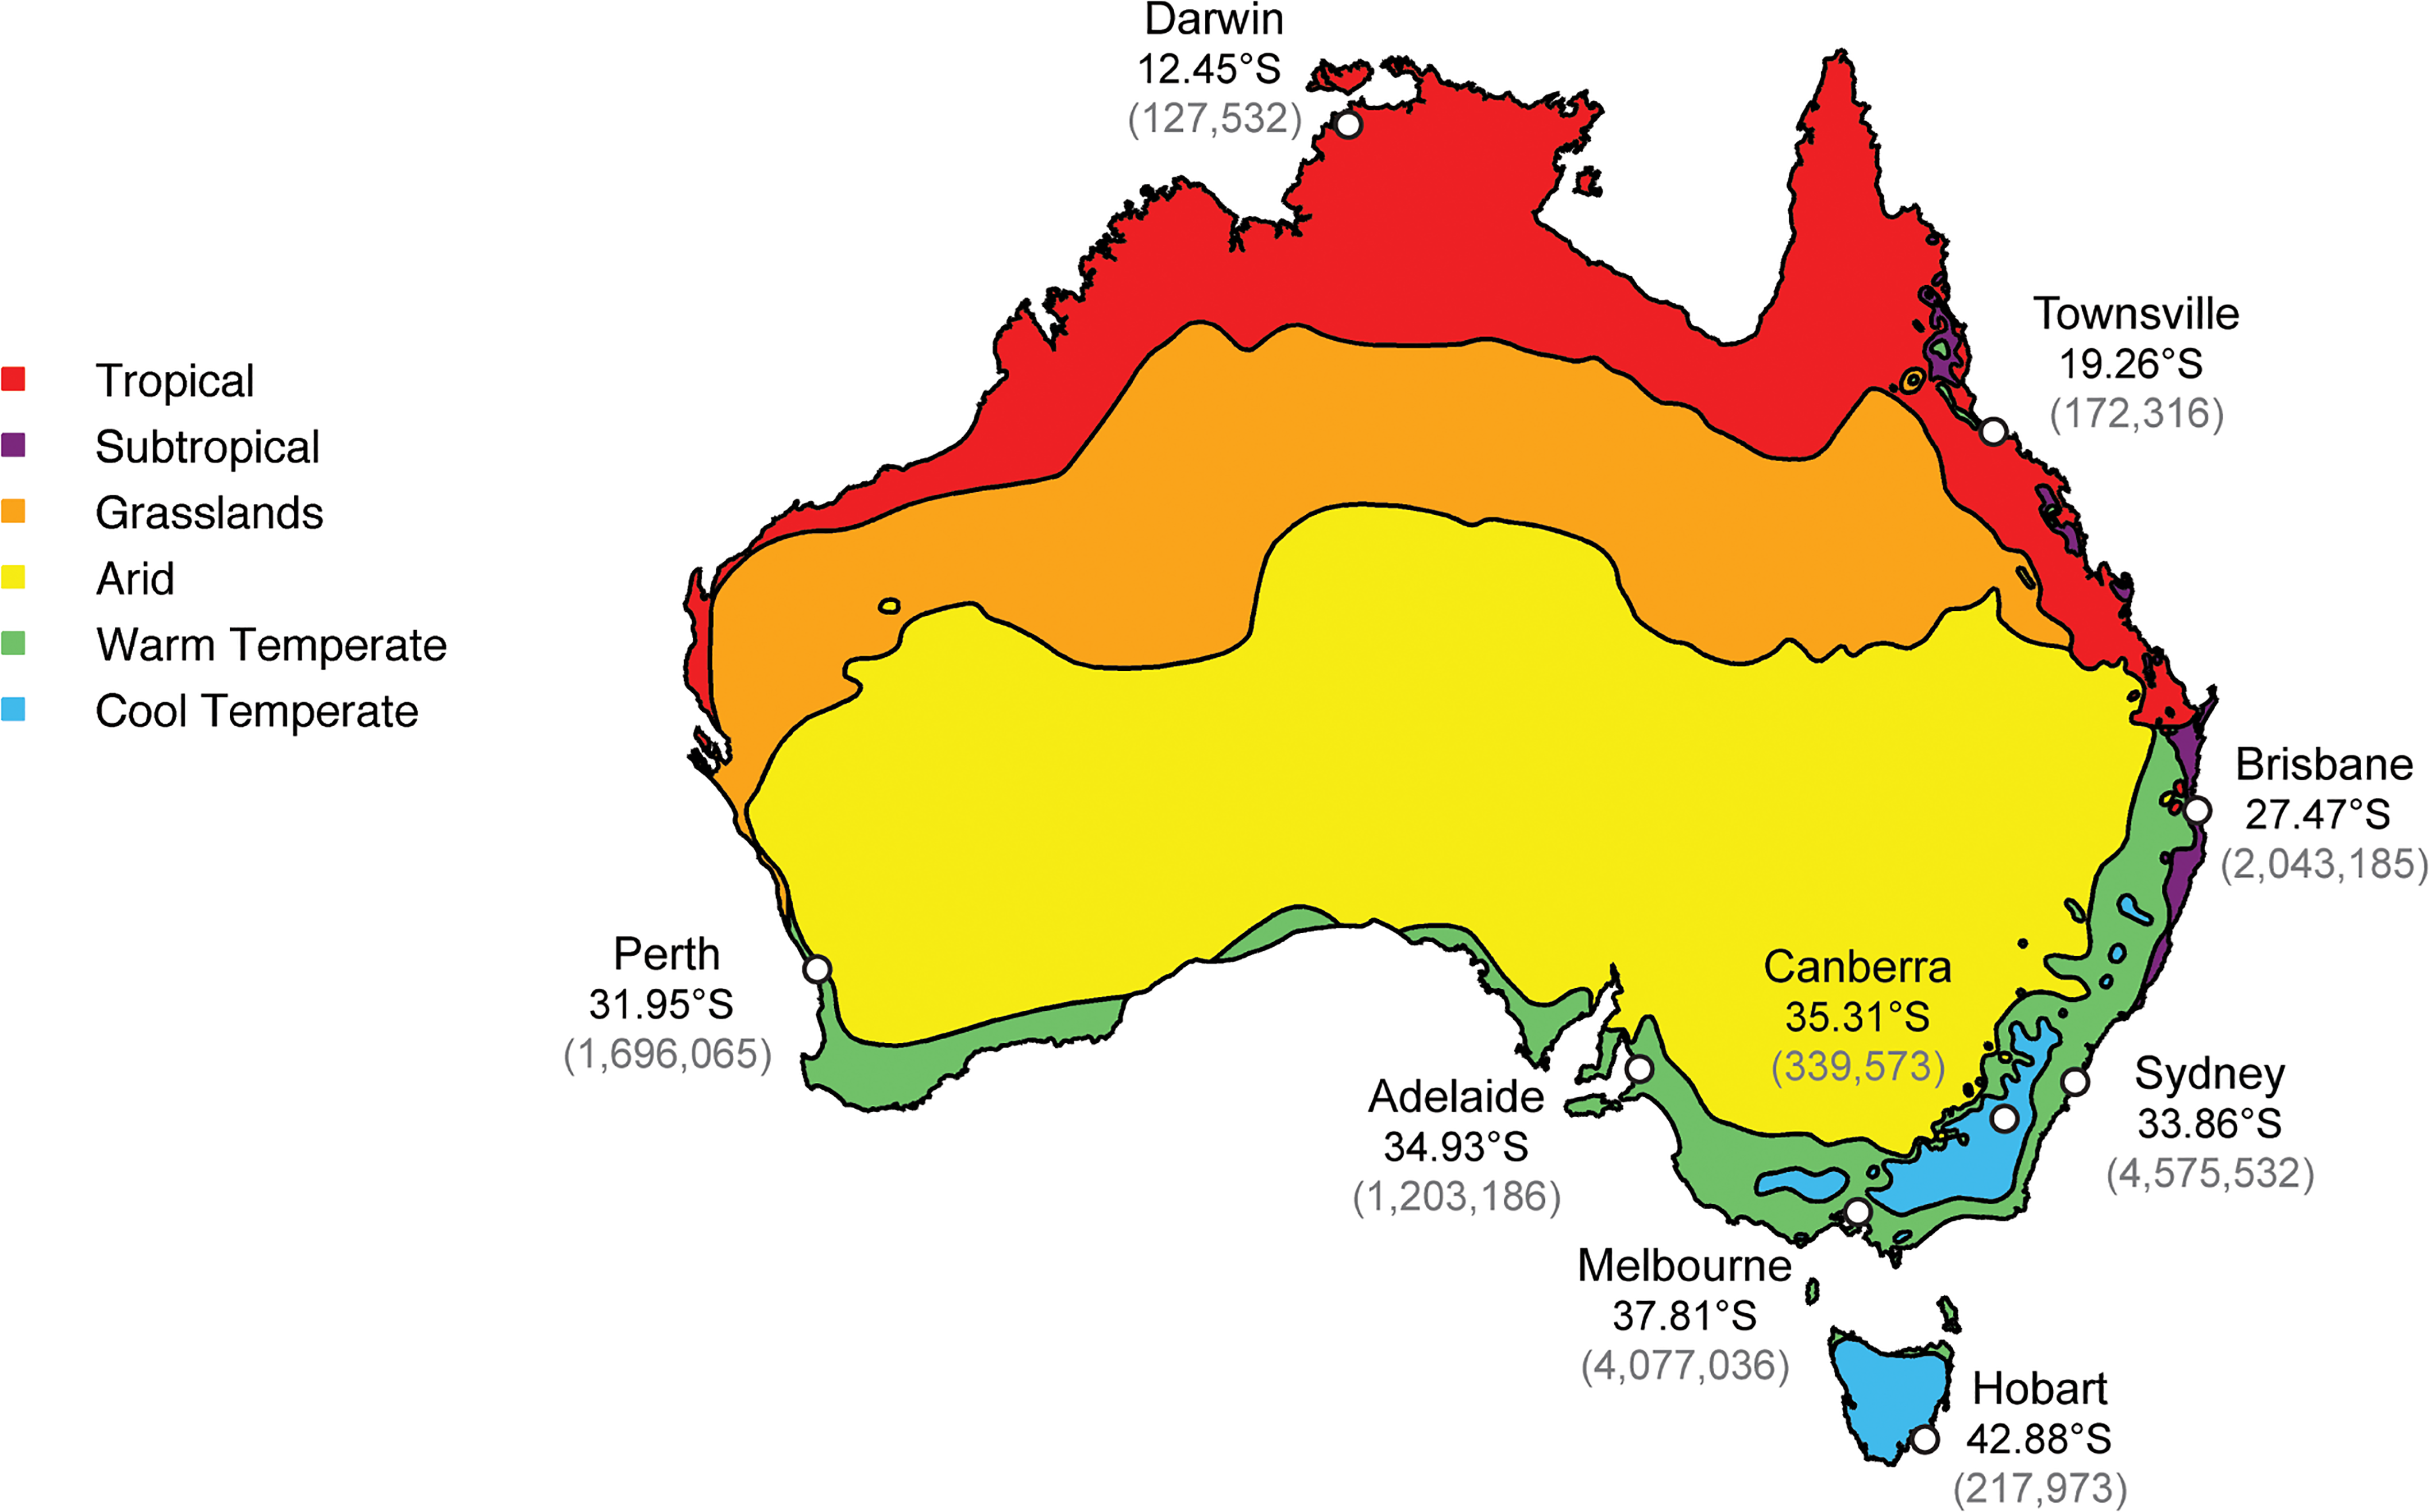 Climate zones and the location of the most populous cities within Australia.